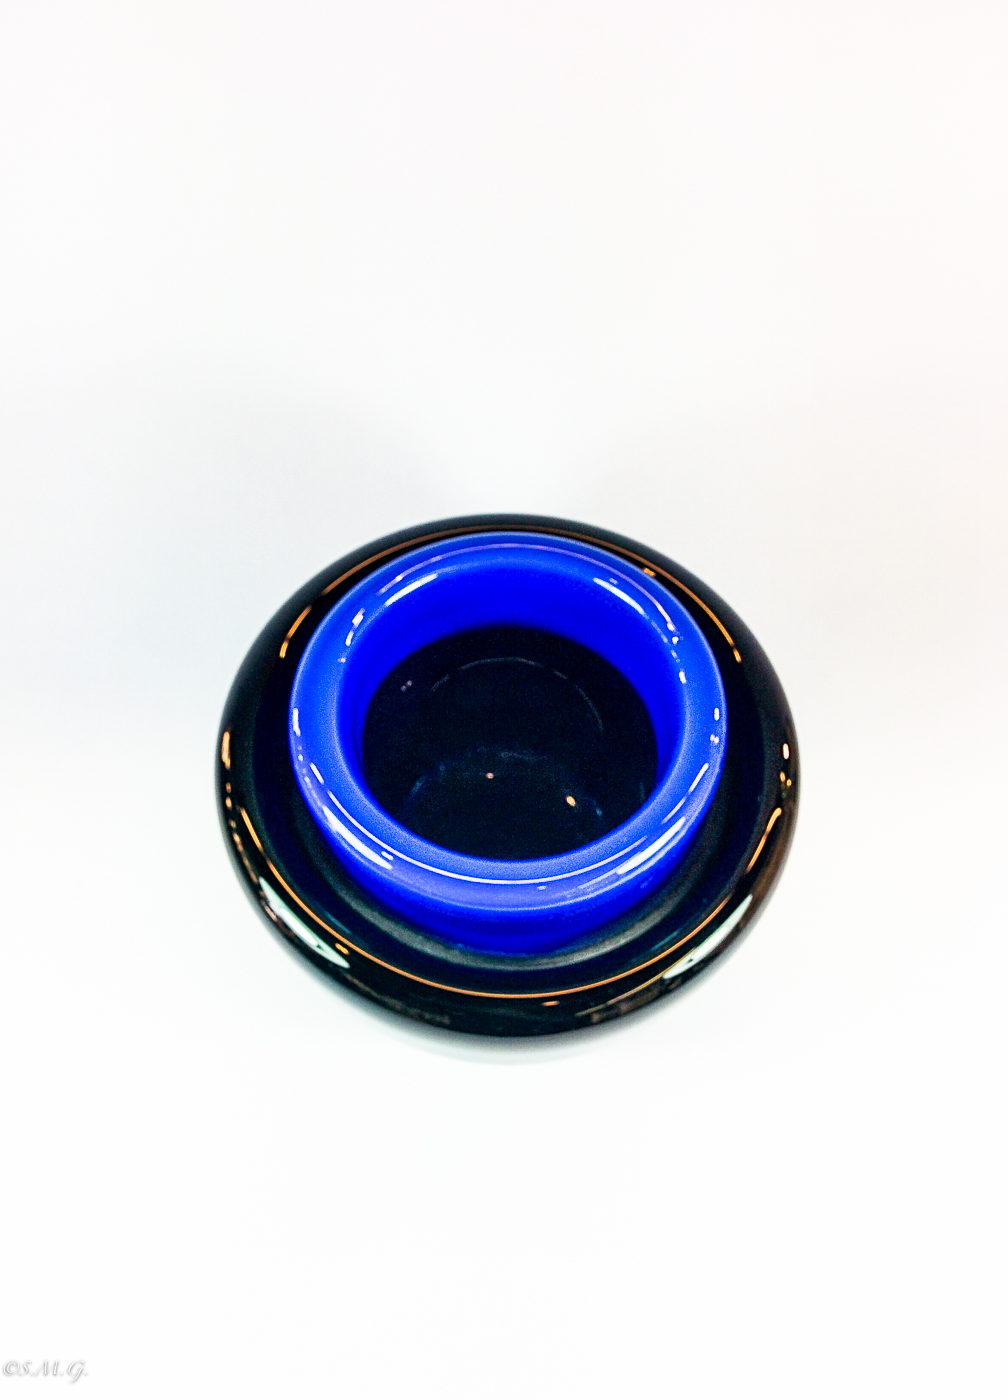 Black an blue Murano glass bowl